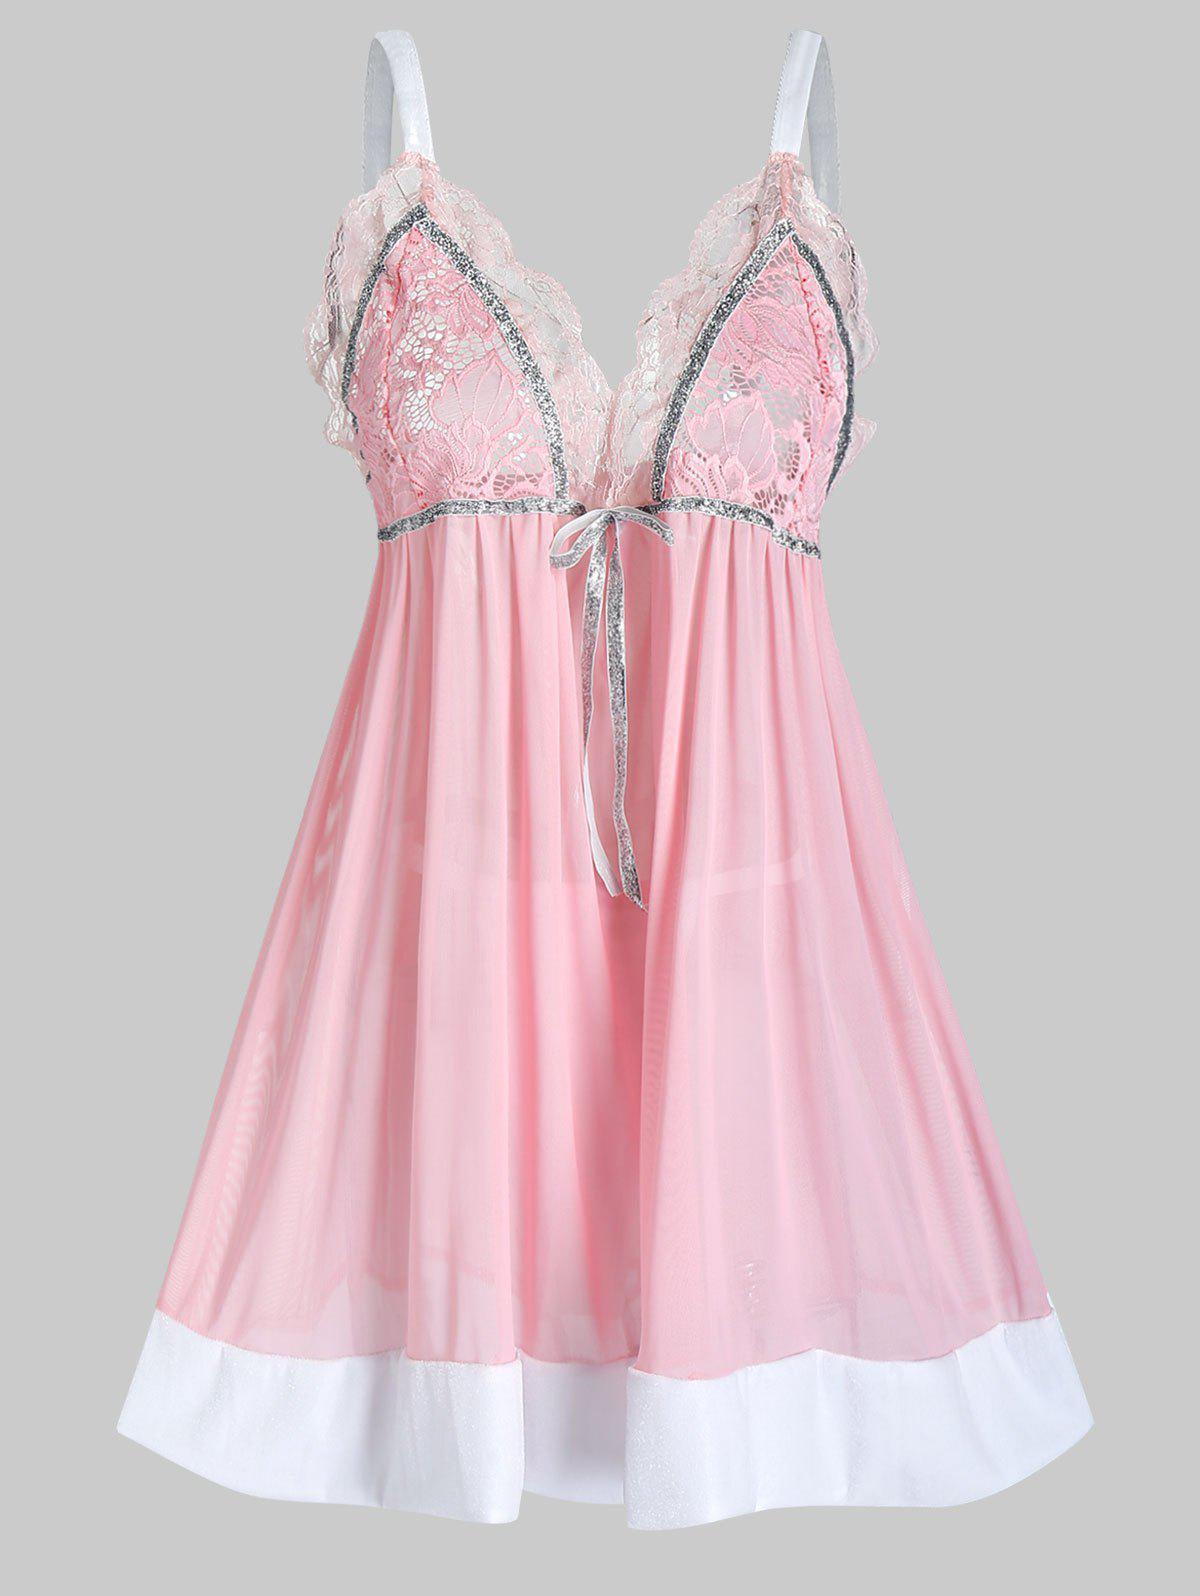 Plus Size Lace Sheer Scalloped Lingerie Cami Babydoll - LIGHT PINK 5X